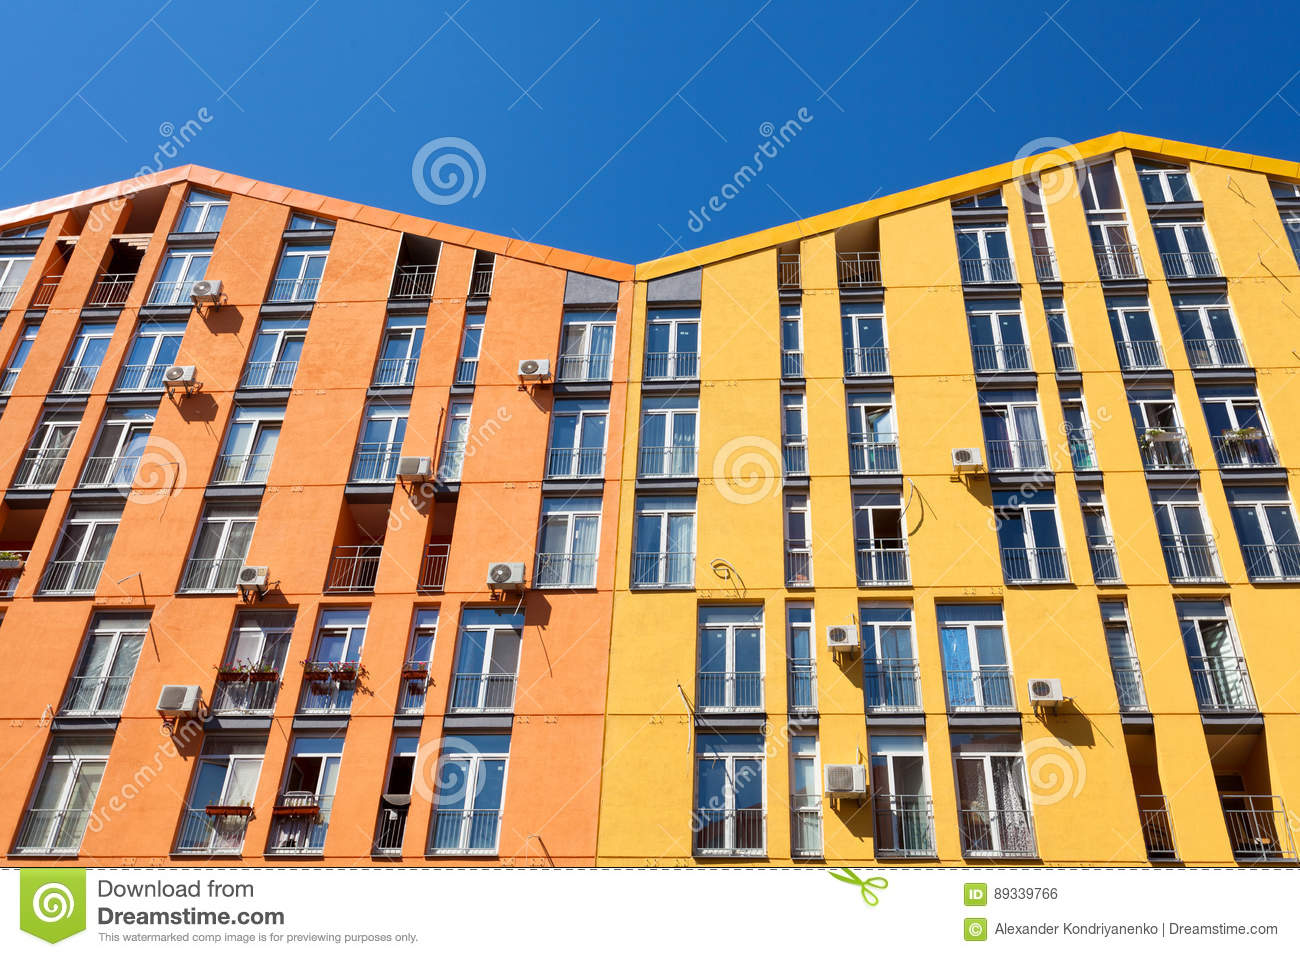 Color facade of a house with lot of air condition units.